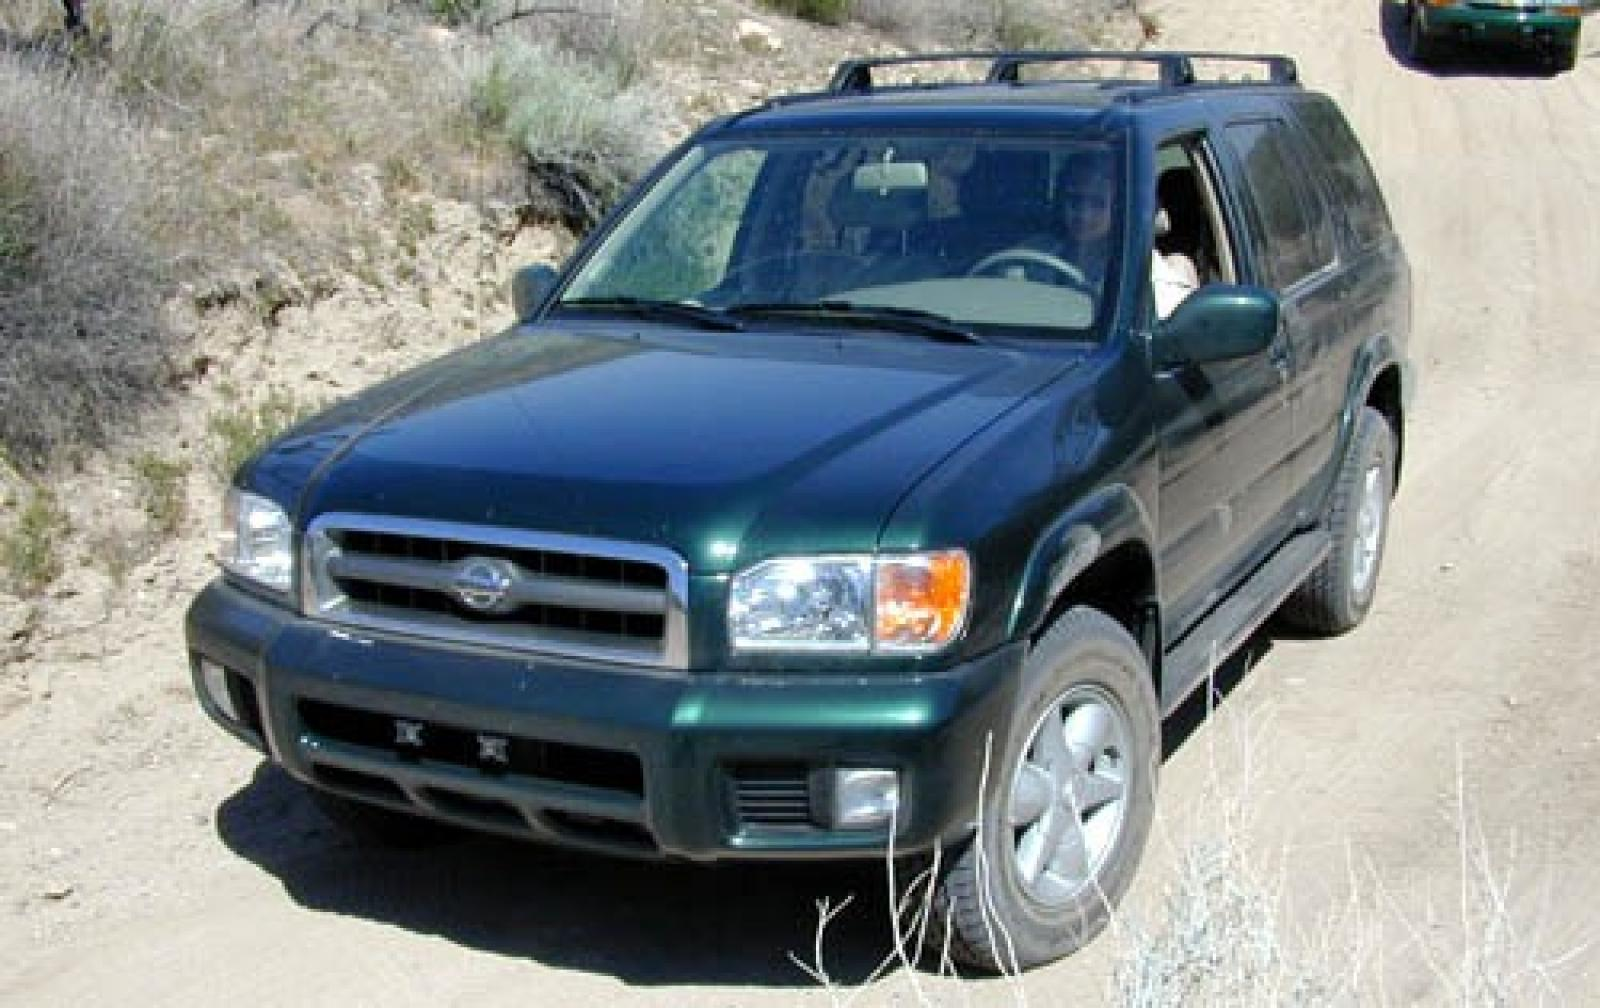 800 1024 1280 1600 Origin 2001 Nissan Pathfinder ...